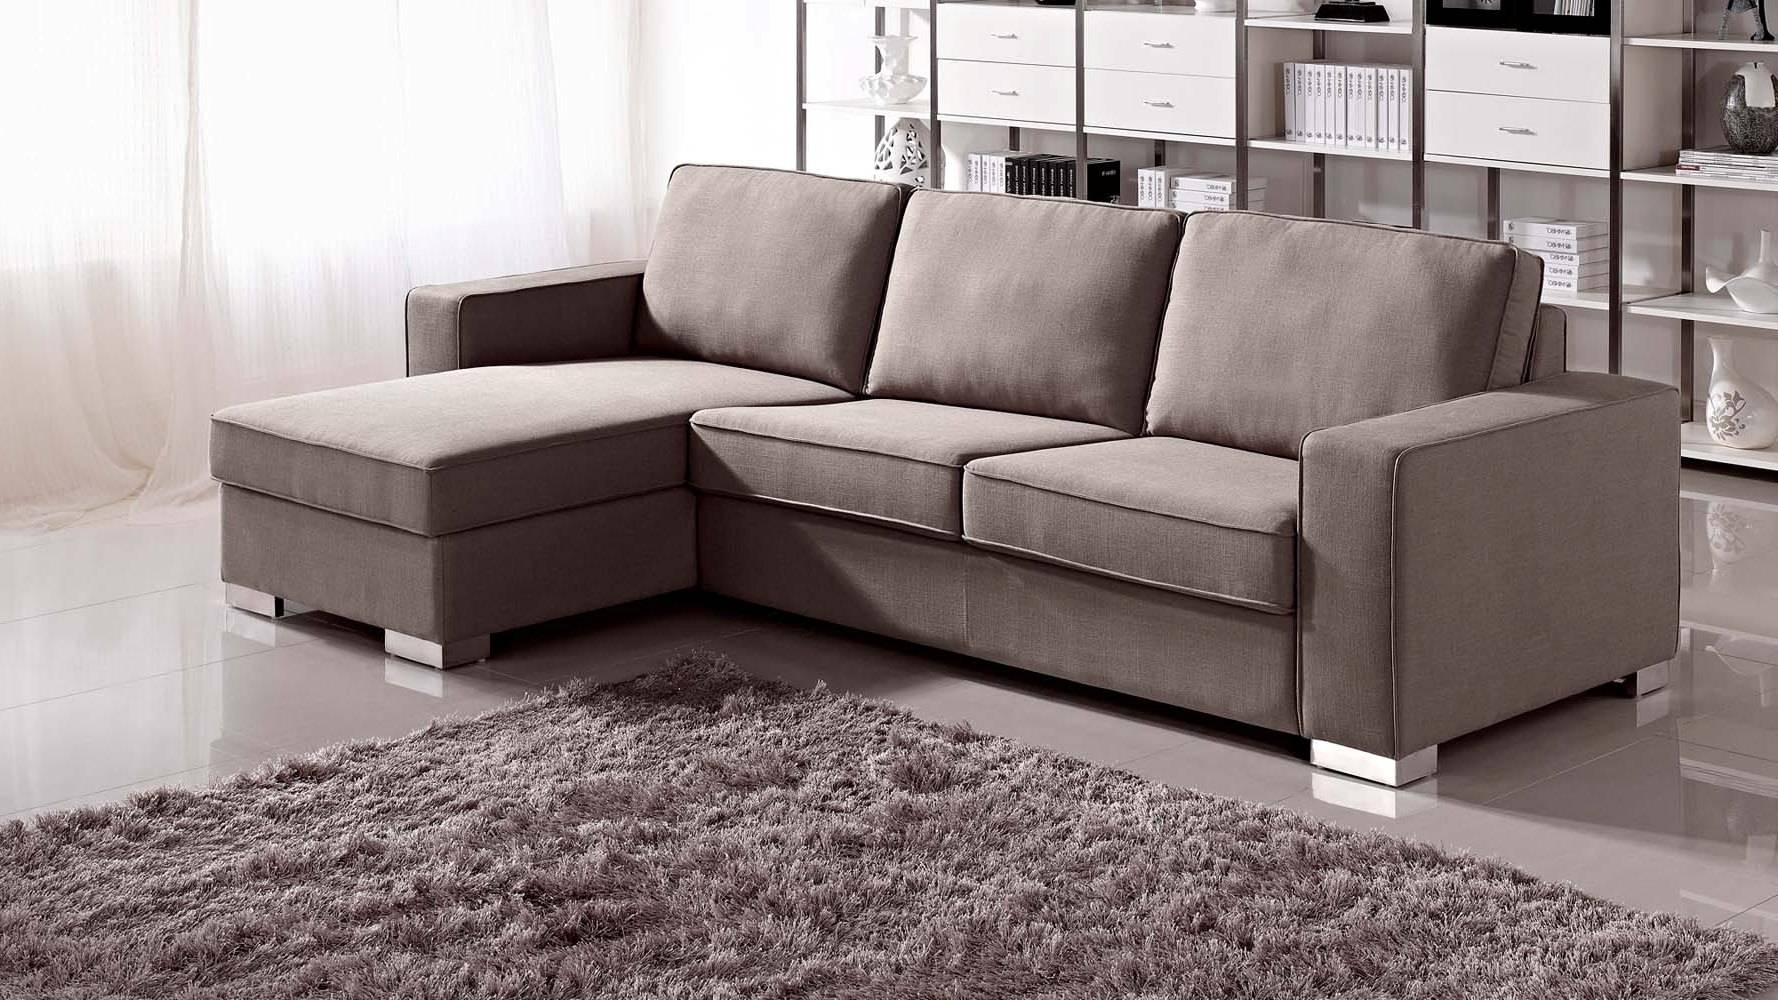 Sofas: Striking Cheap Sofa Sleepers For Small Living Spaces within Sectional Sofa Beds (Image 26 of 30)